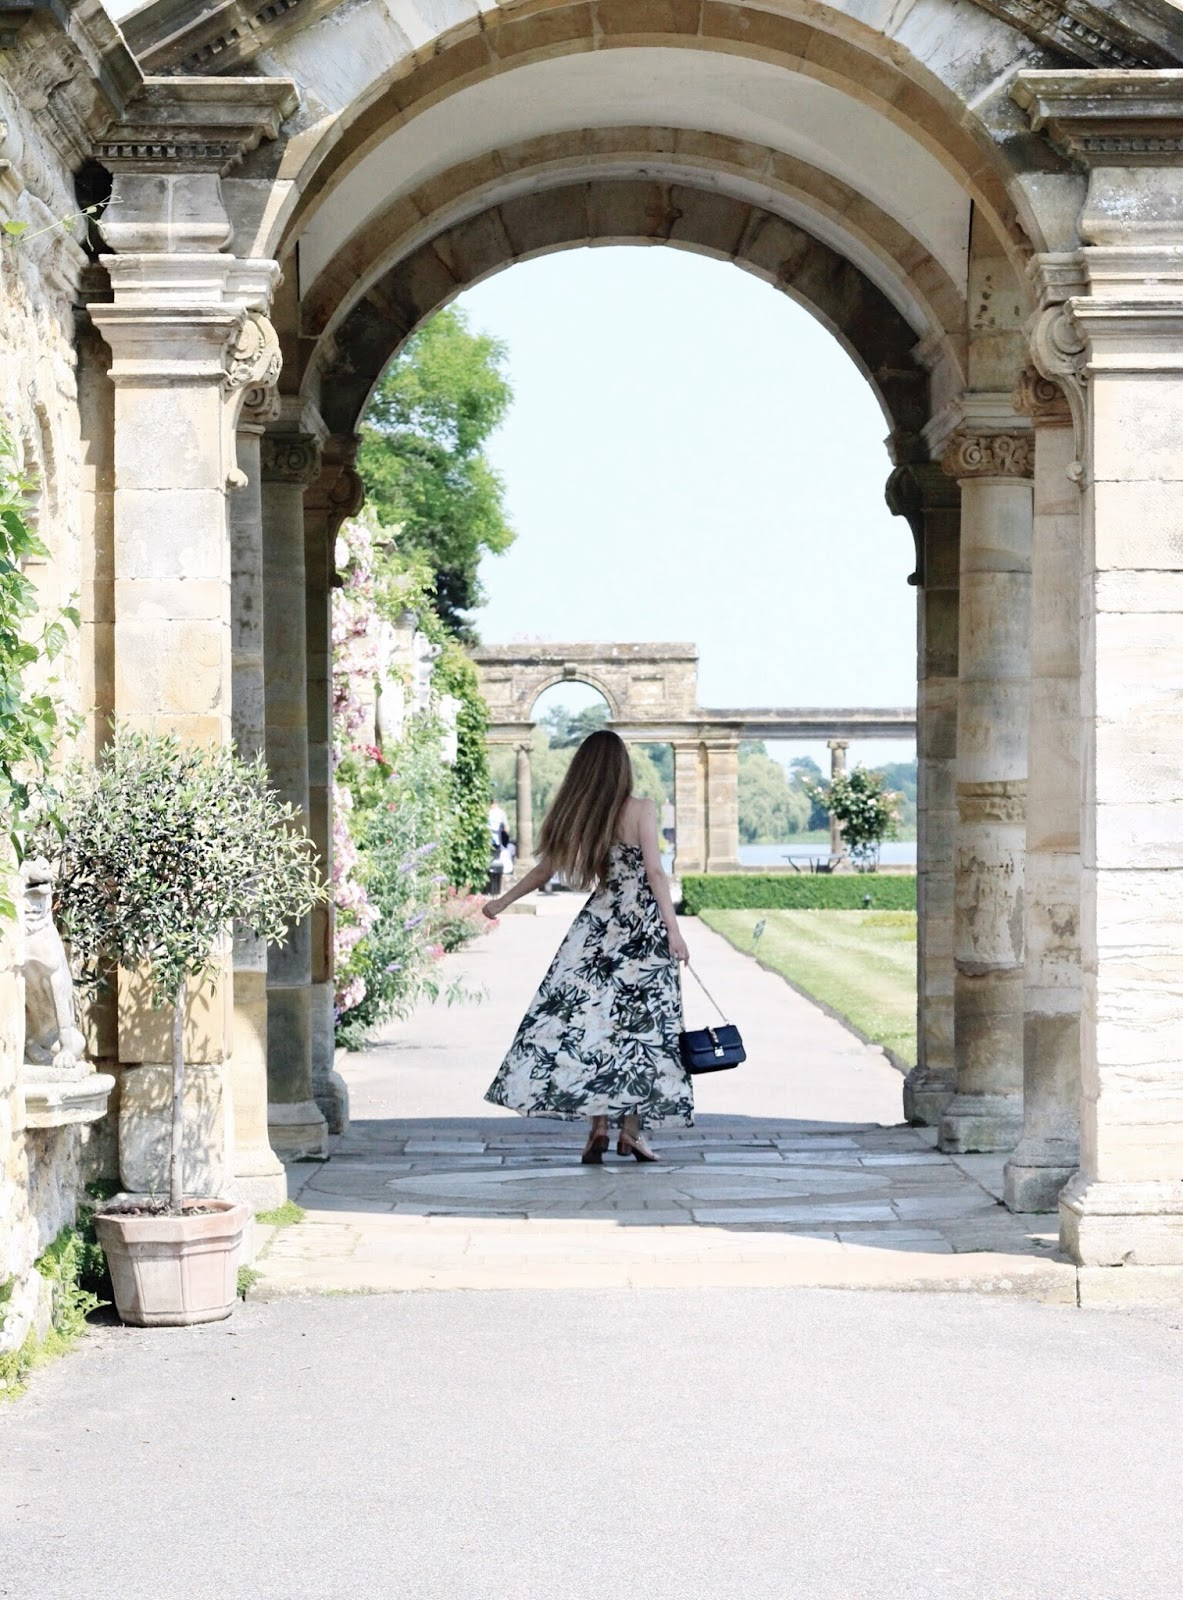 Twirling in Archway of Italian Garden